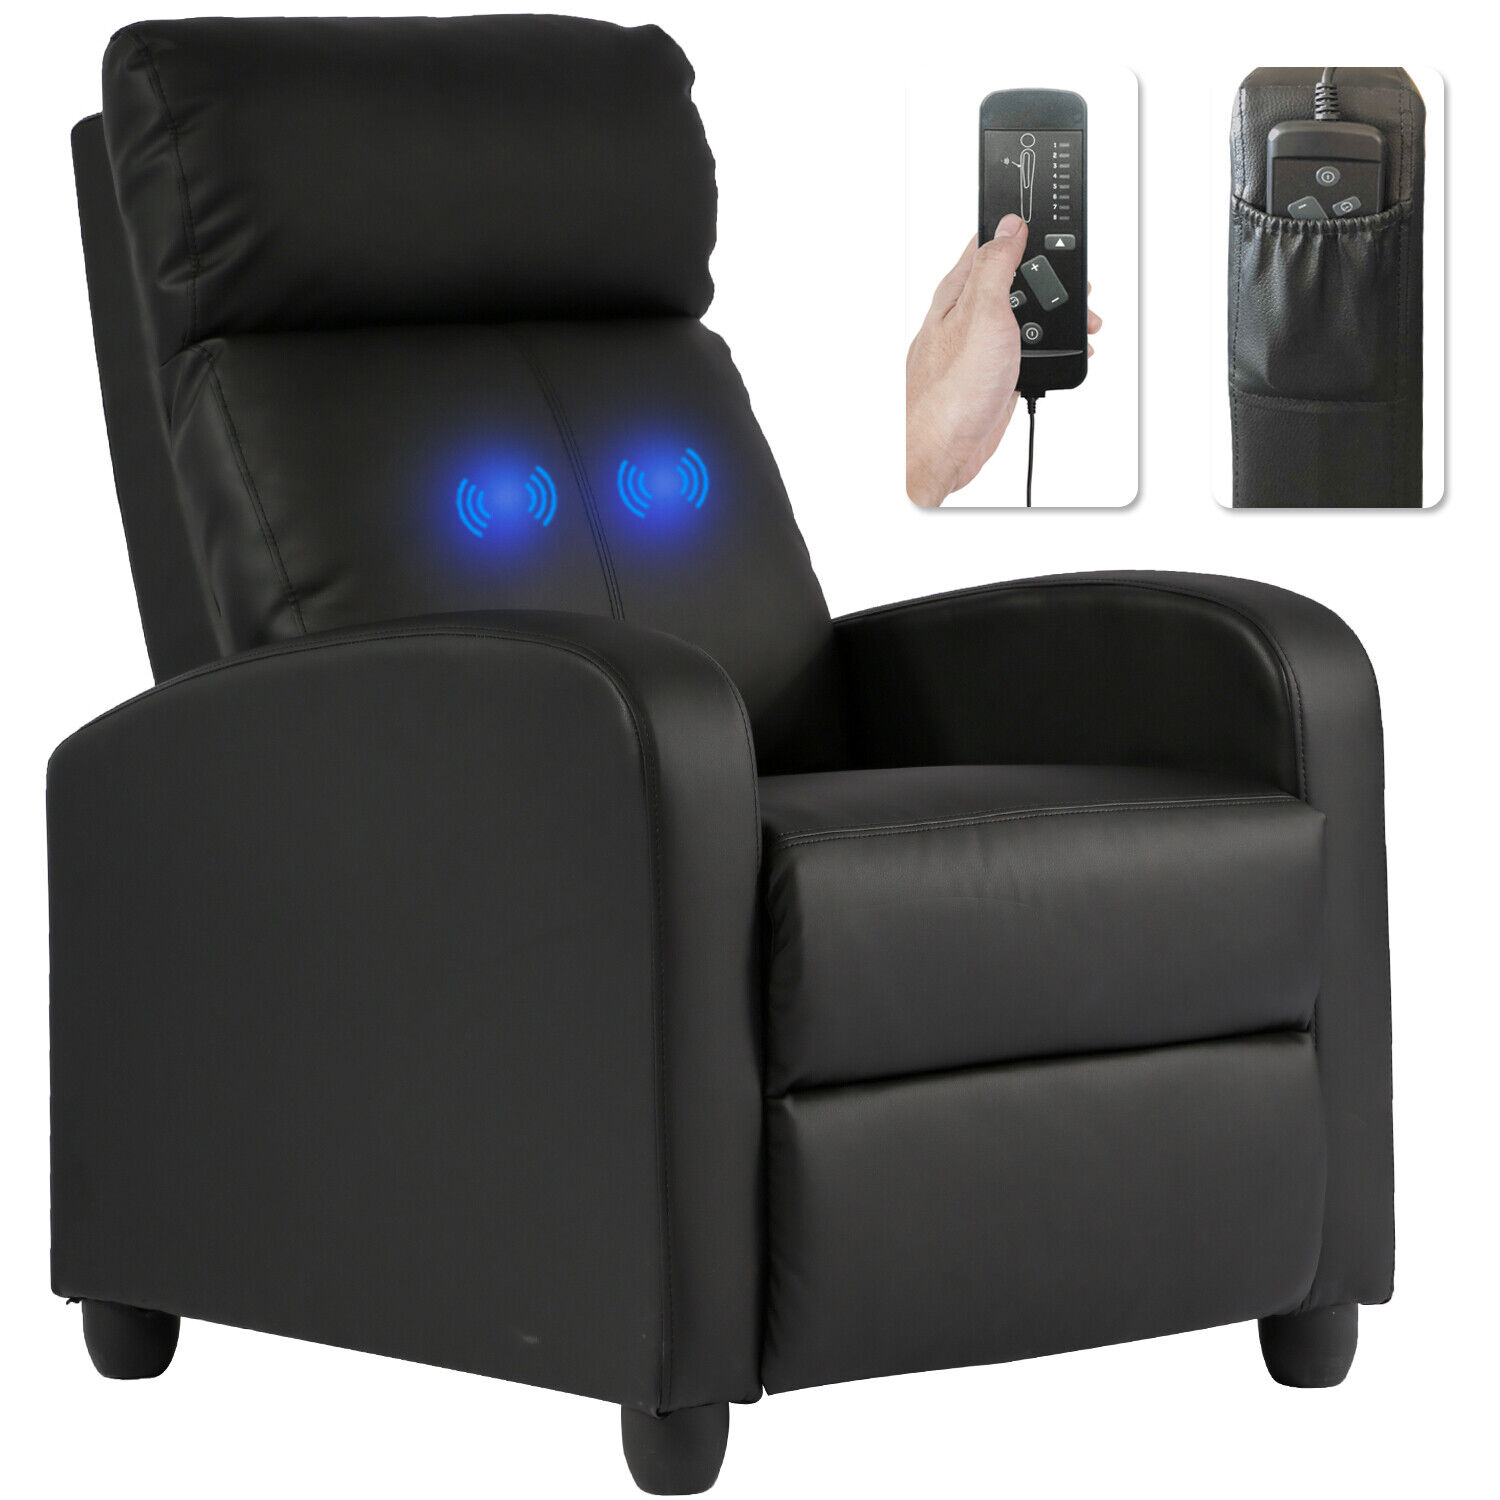 Electric Shiatsu Zero Gravity Full Body Massage Chair Recliner with Built-In Electric Massage Chairs